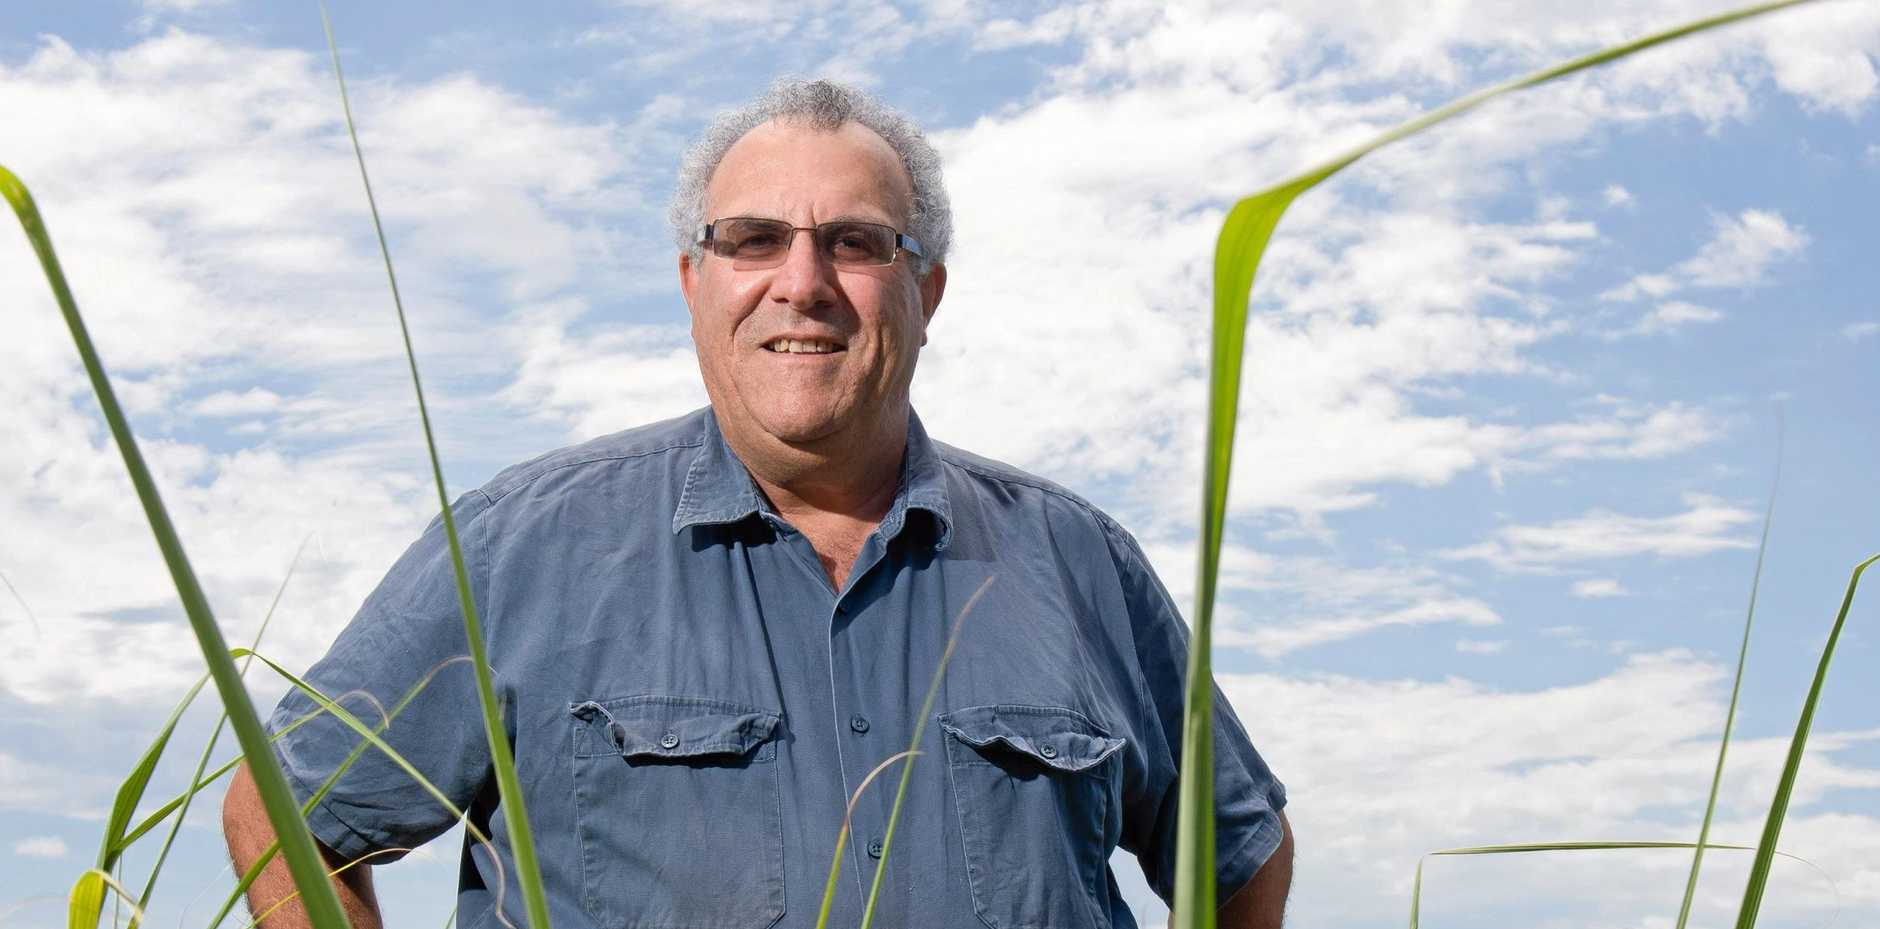 Paul Schembri has been elected for a third term as Chairman of Canegrowers Queensland.